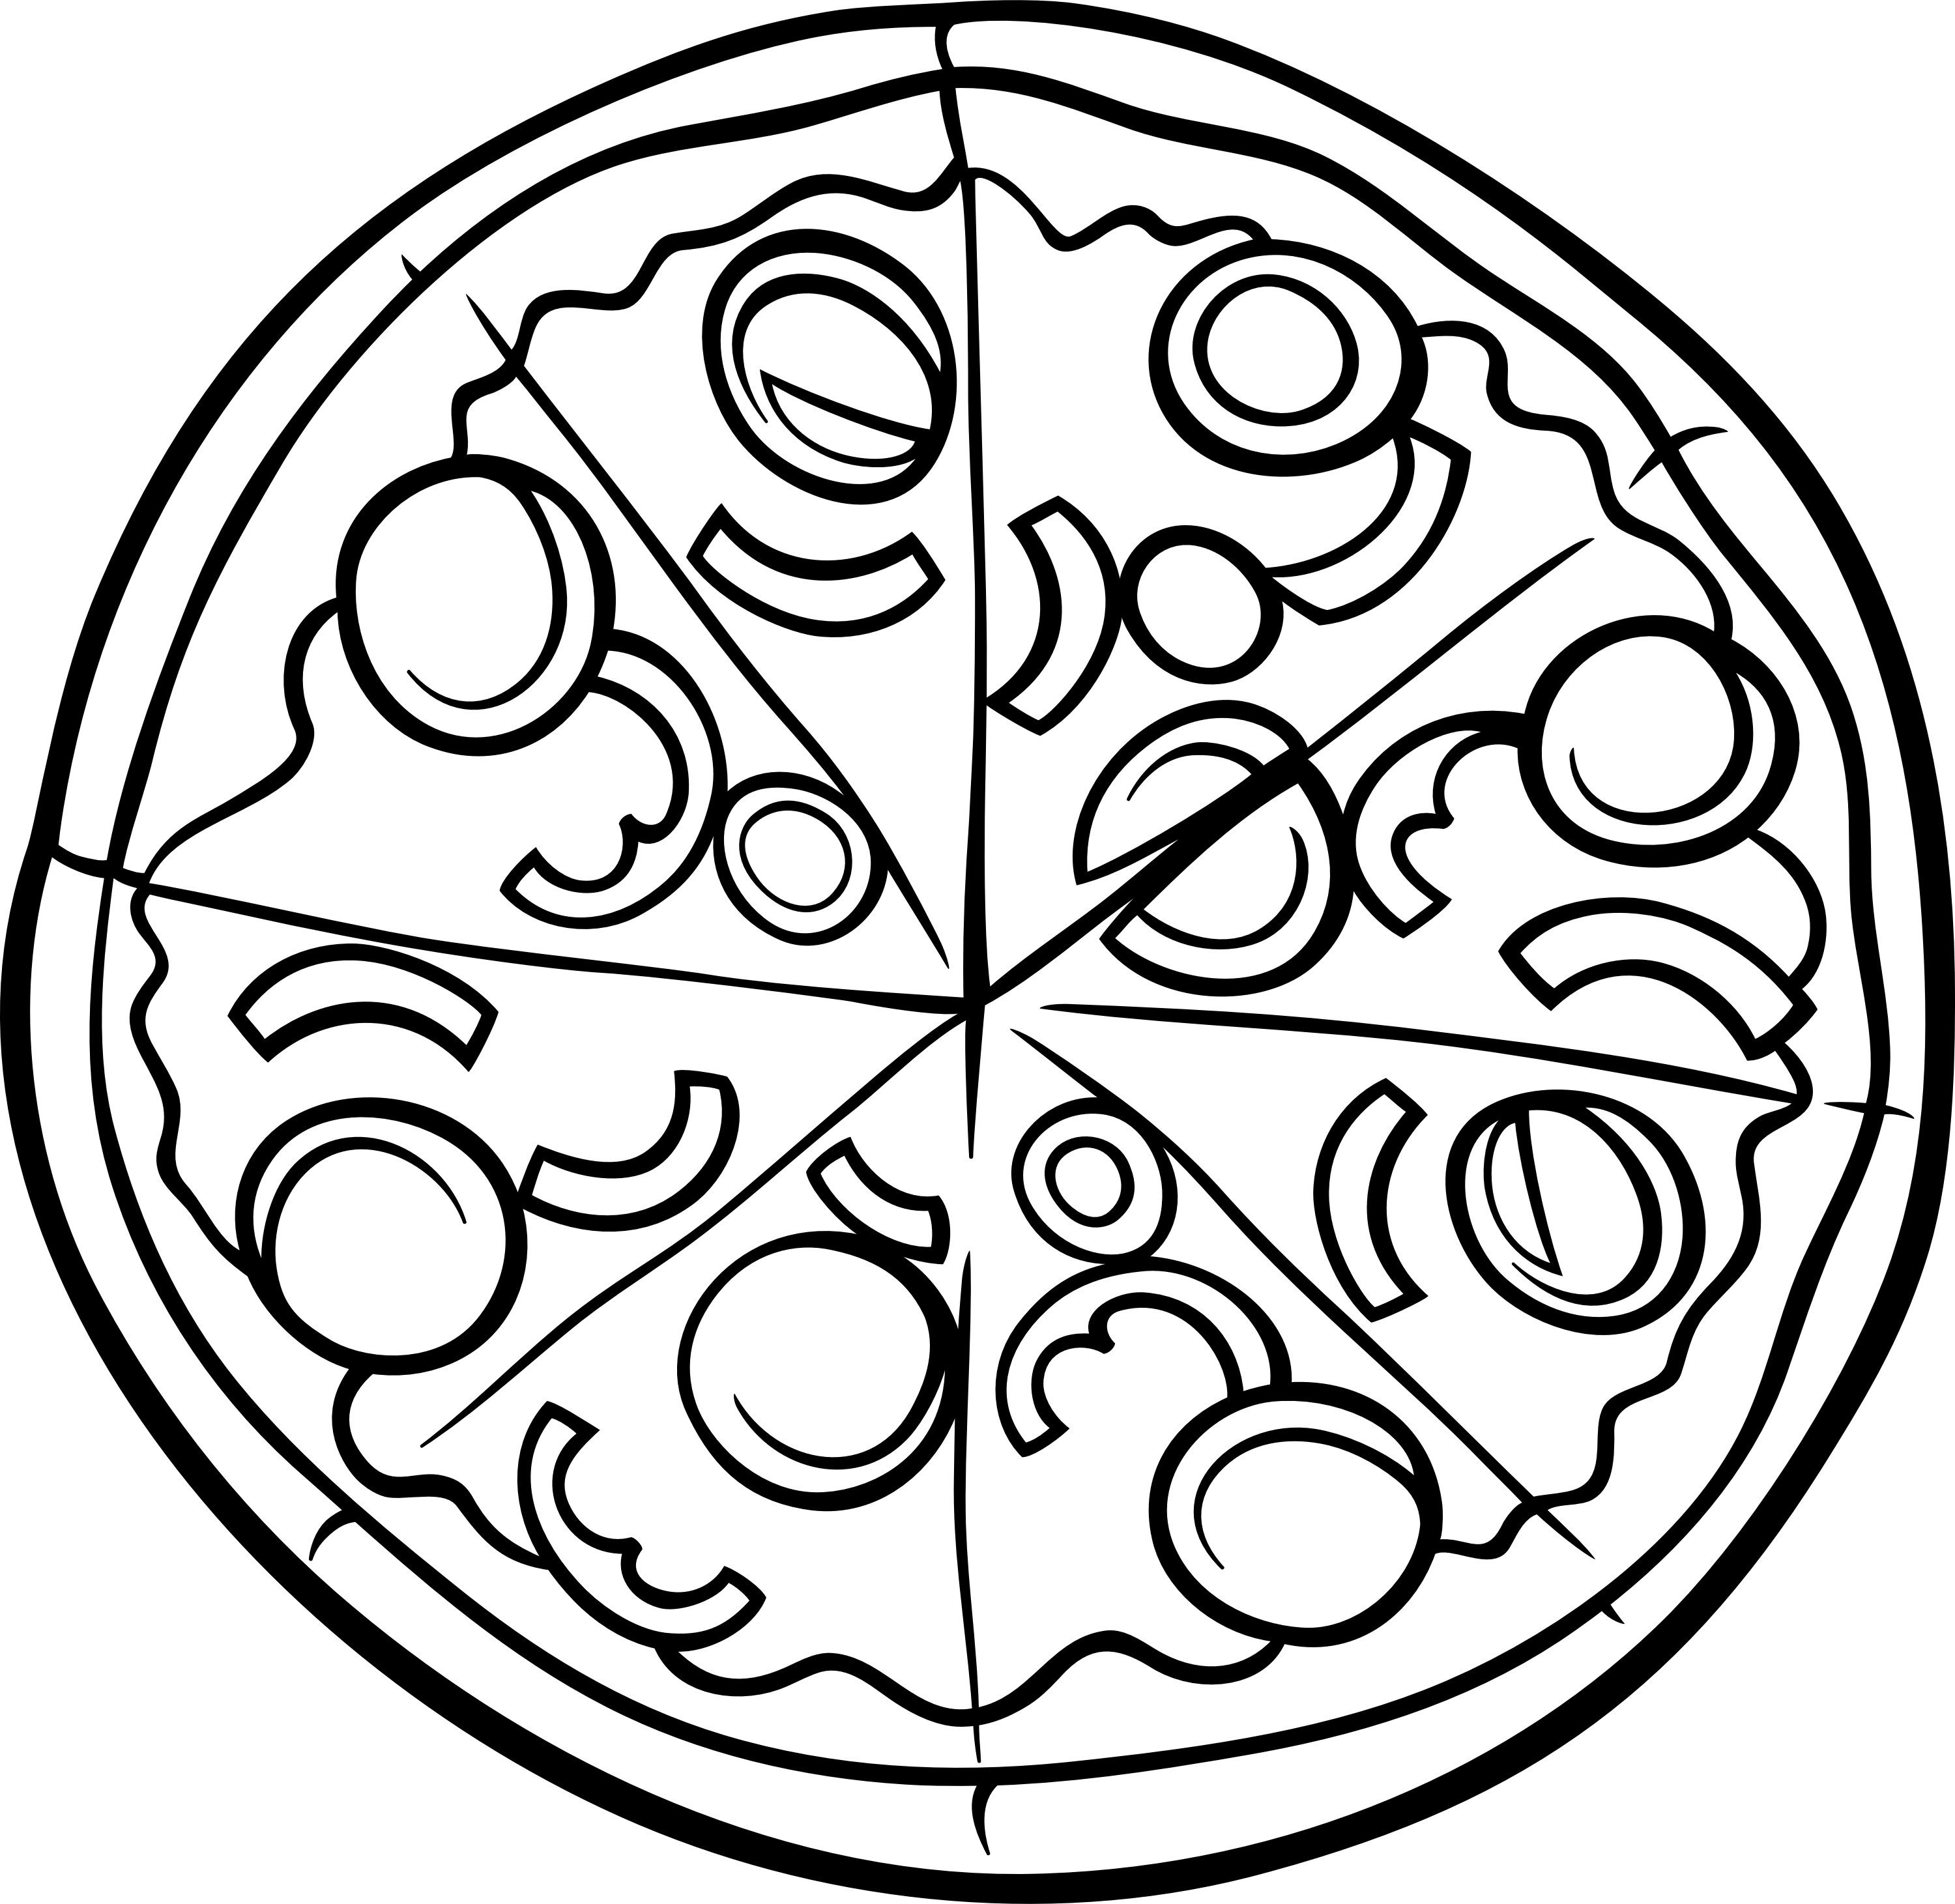 3000x2922 Pizza Coloring Page Printable